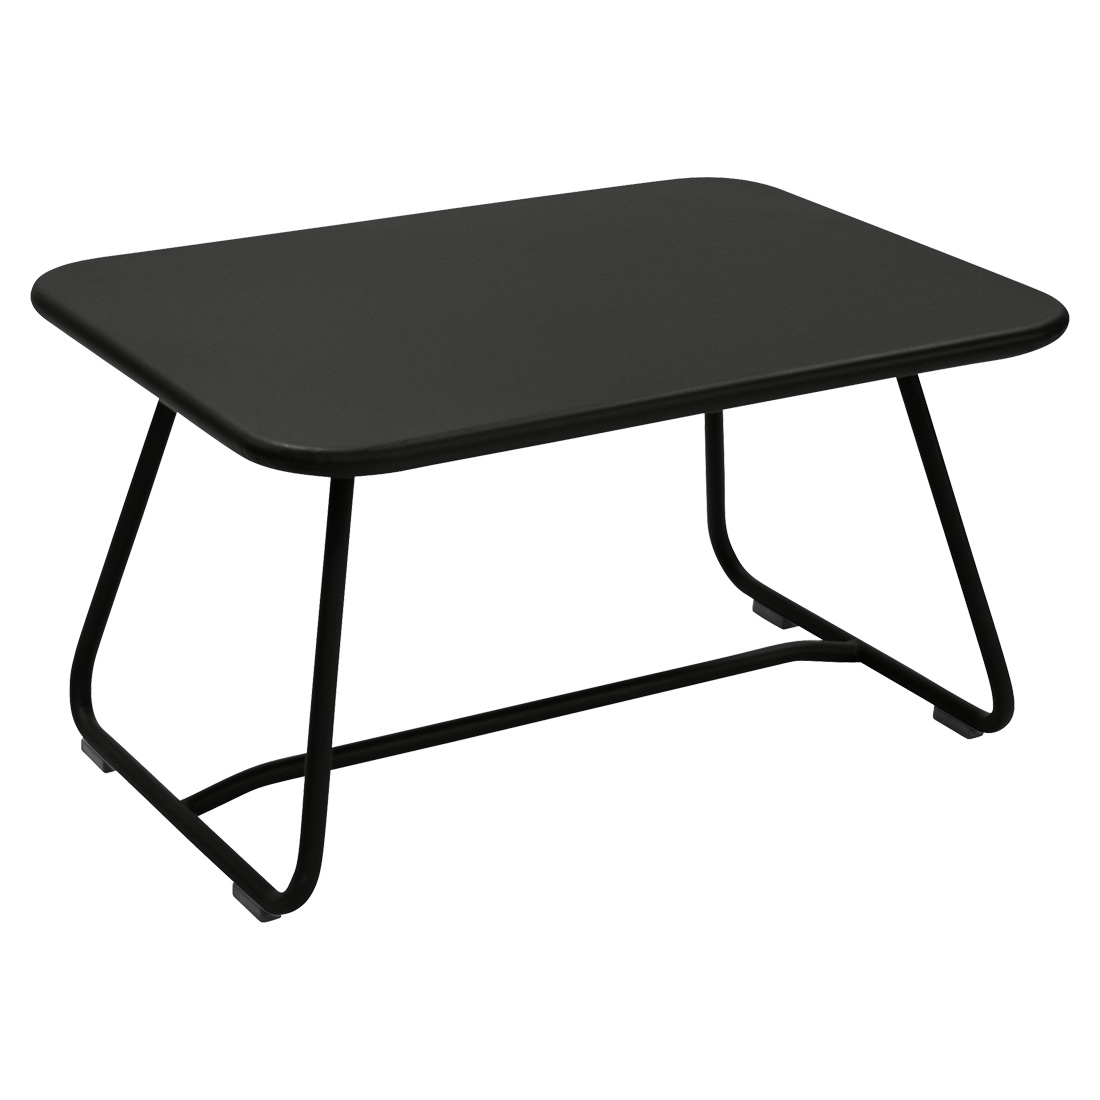 Sixties Low Table Luiquorice